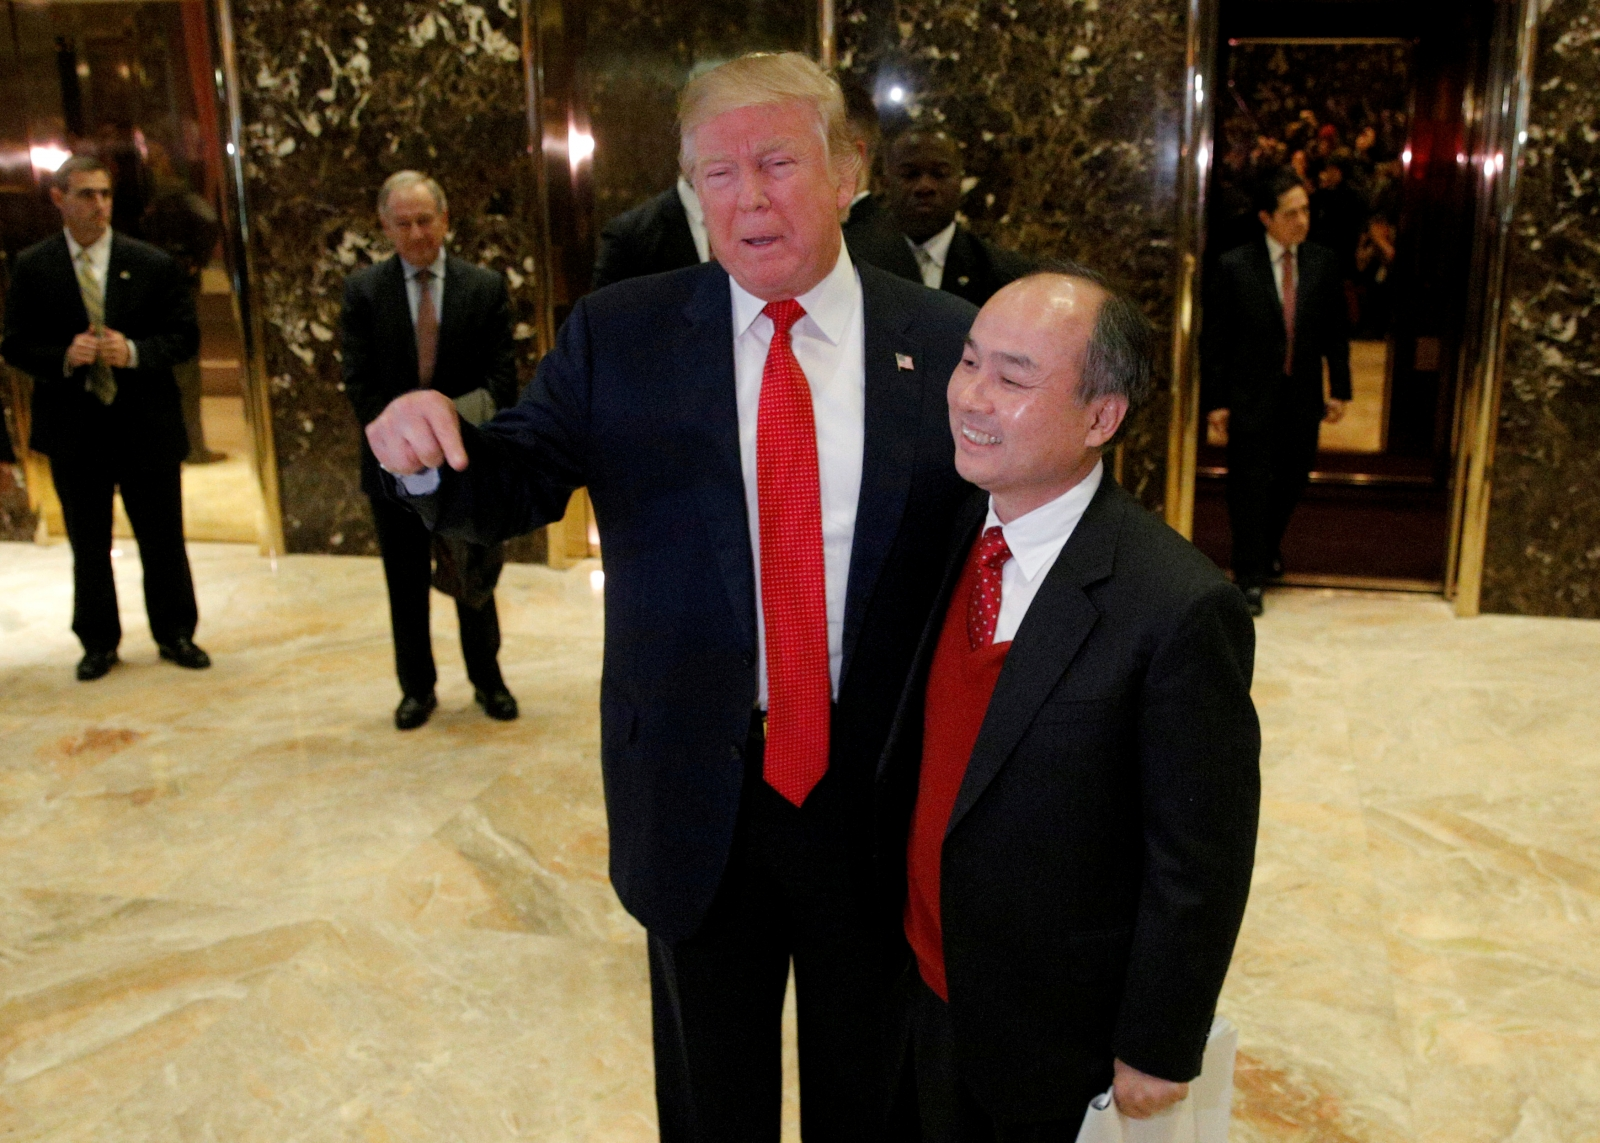 Donald Trump announces SoftBank's plans to invest $50bn and add 50,000 jobs in the US